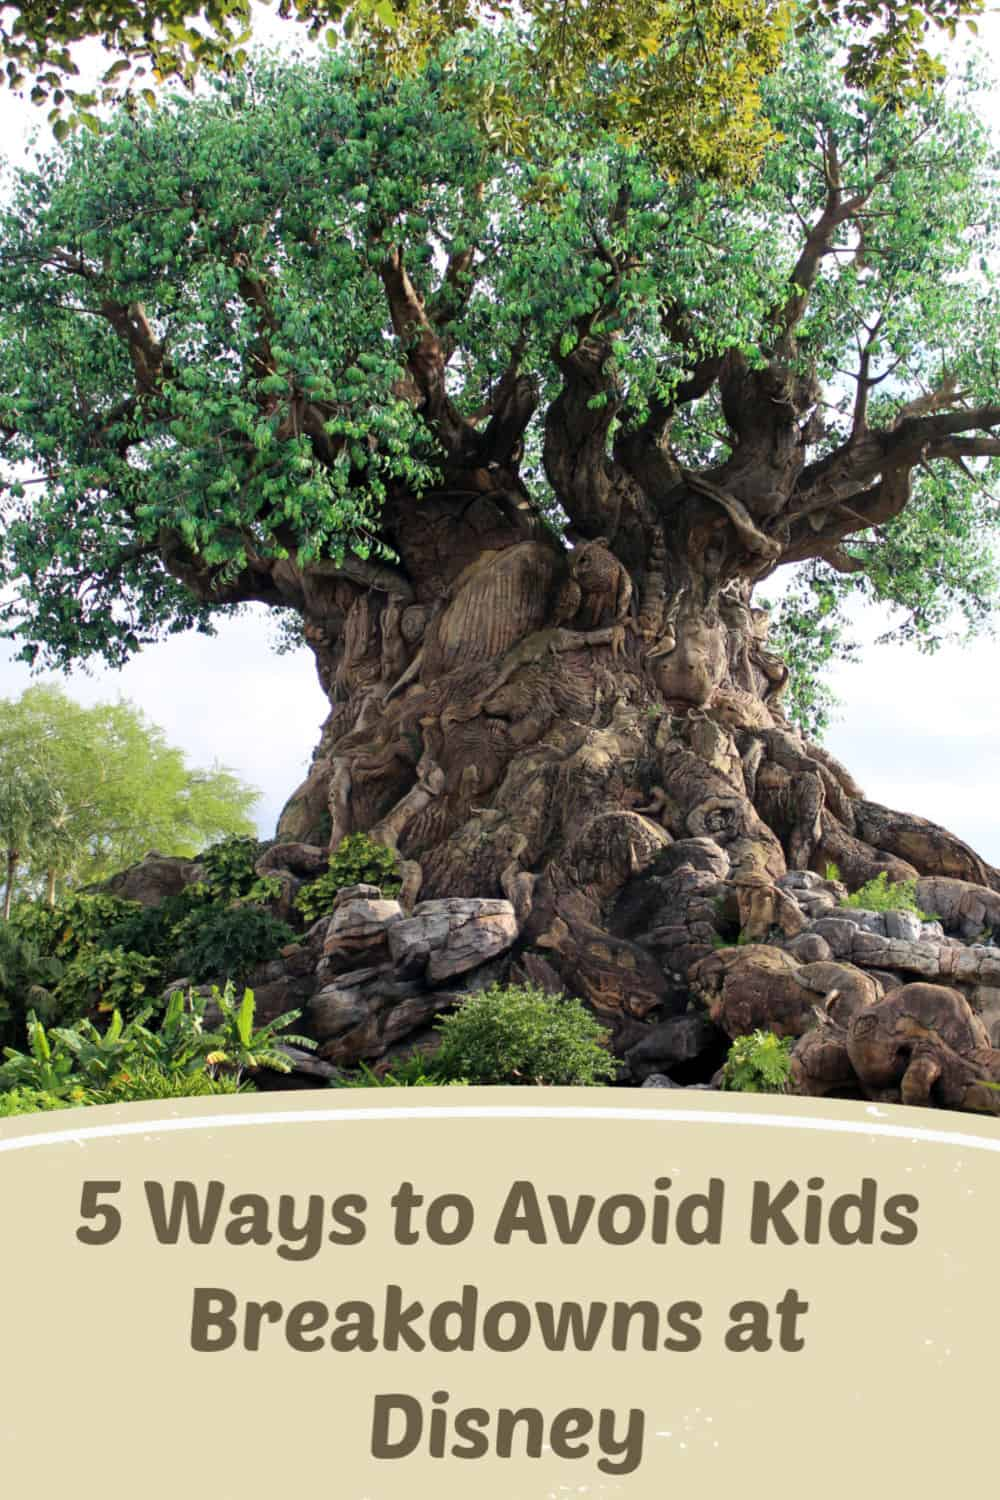 5 Ways to Avoid Kids Breakdowns at Disney - Taking young kids to Disney doesn't have to end with a breakdown. Avoid meltdowns with these simple tips.